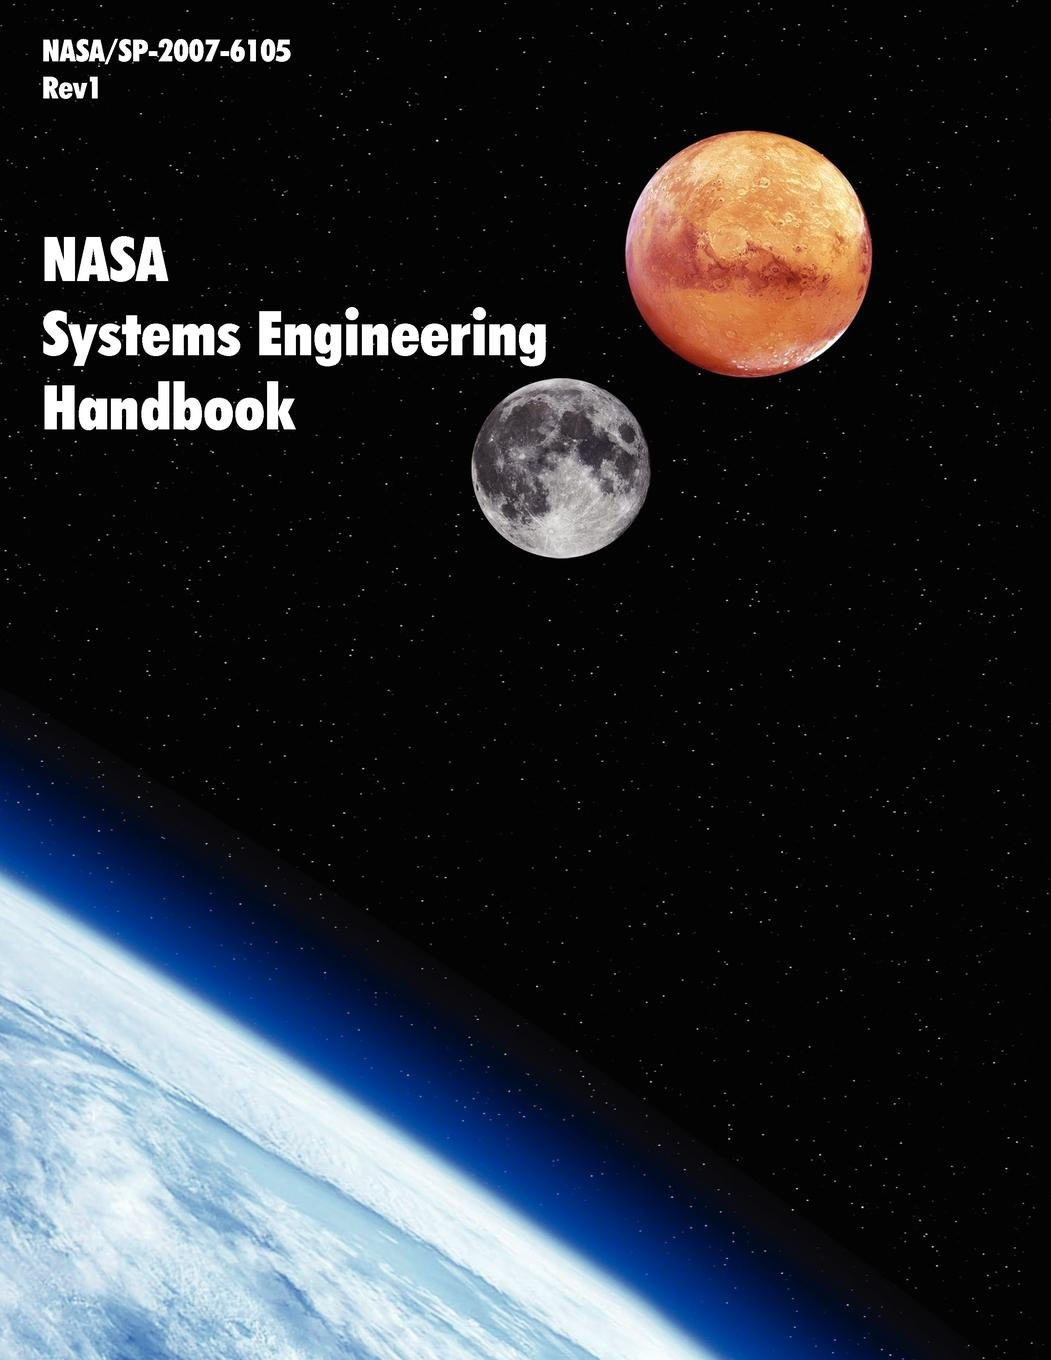 Download NASA Systems Engineering Handbook (NASA/SP-2007-6105 Rev1) PDF